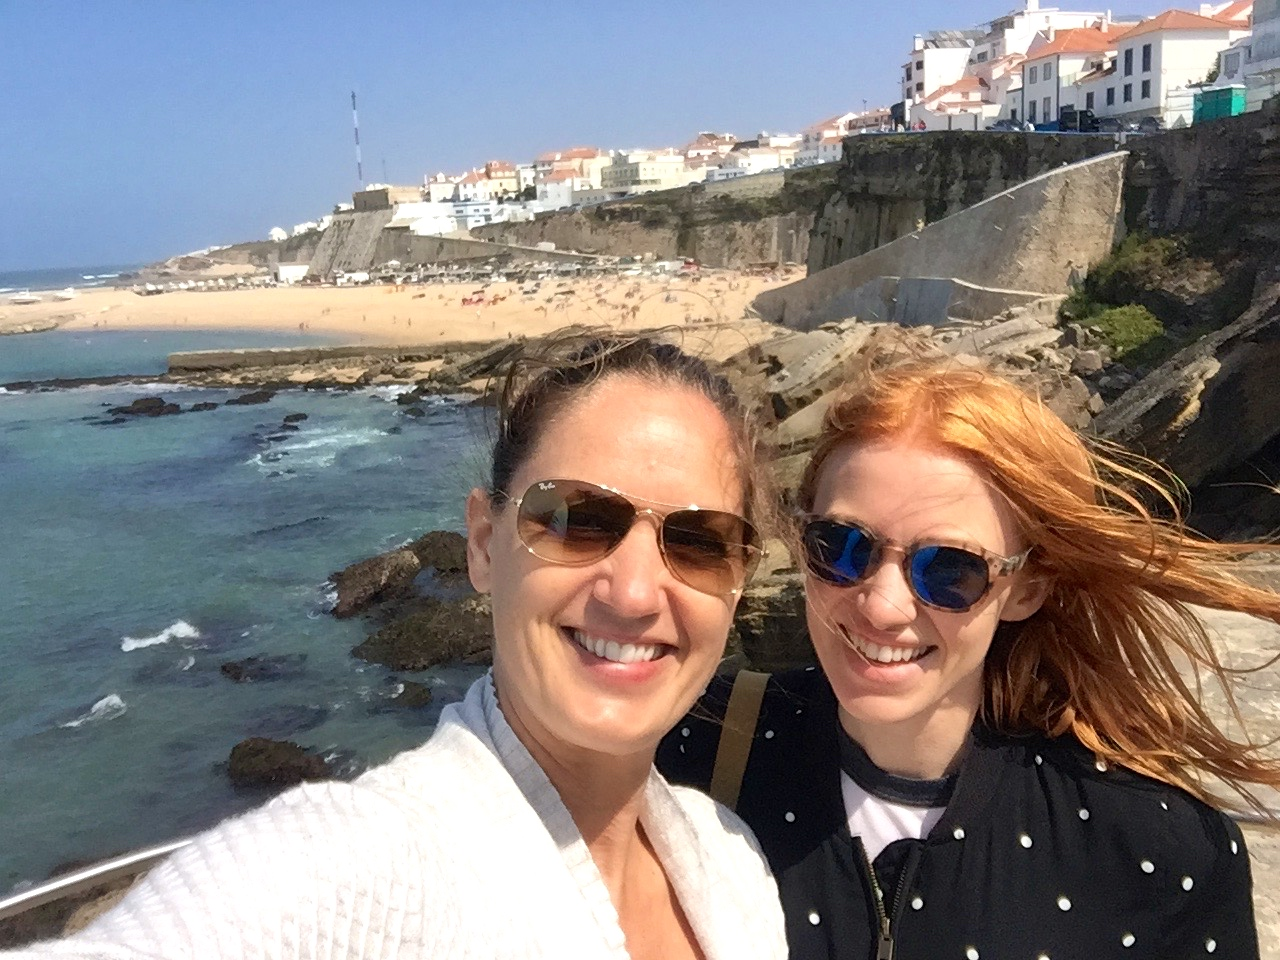 When friends come to visit Portugal, it's a very good day. Also, this picture is proof I have friends. Or, a friend.